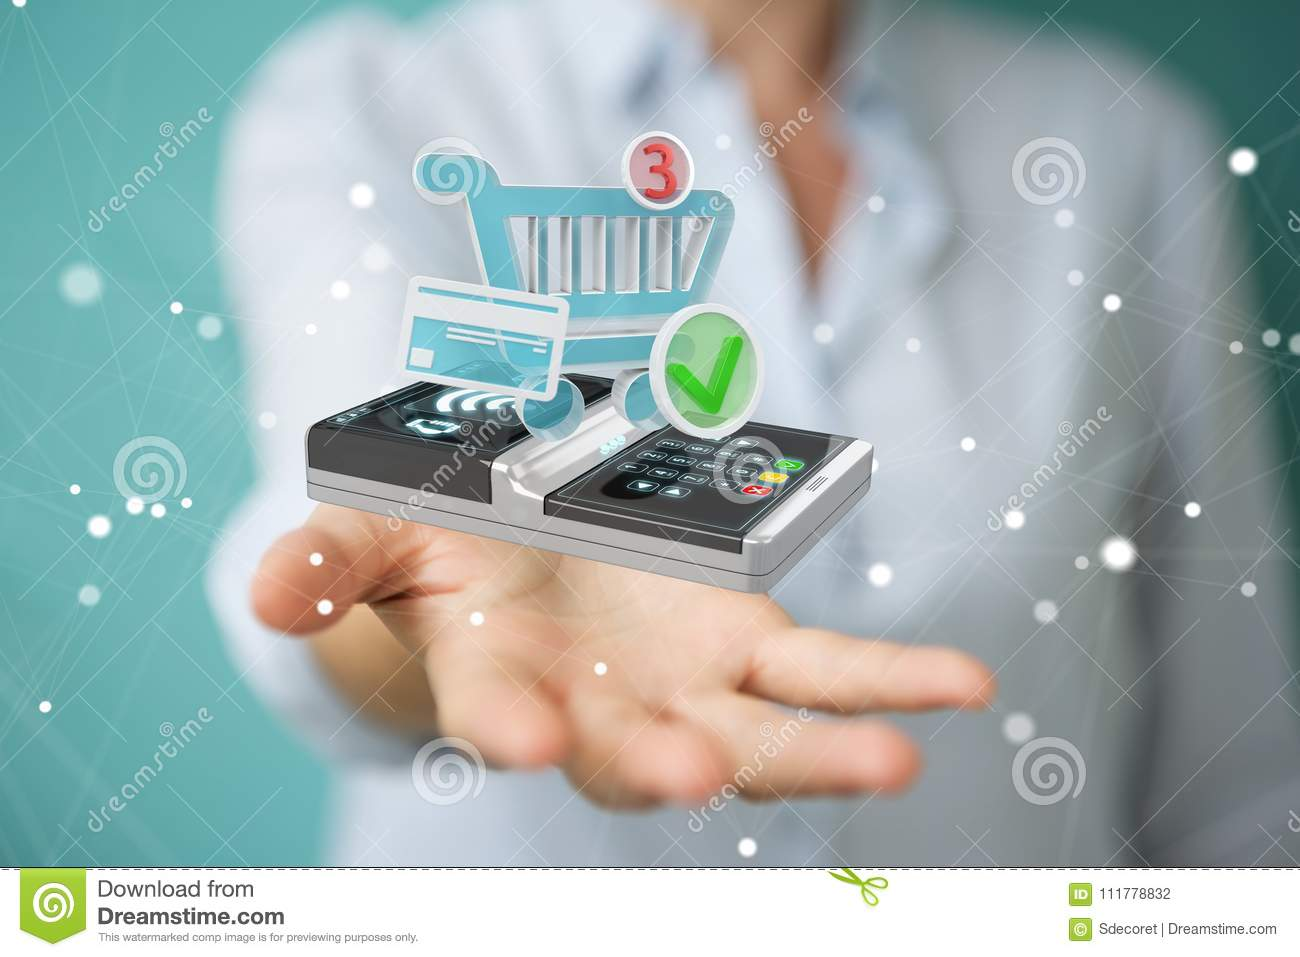 Businesswoman using contactless terminal payment 3D rendering